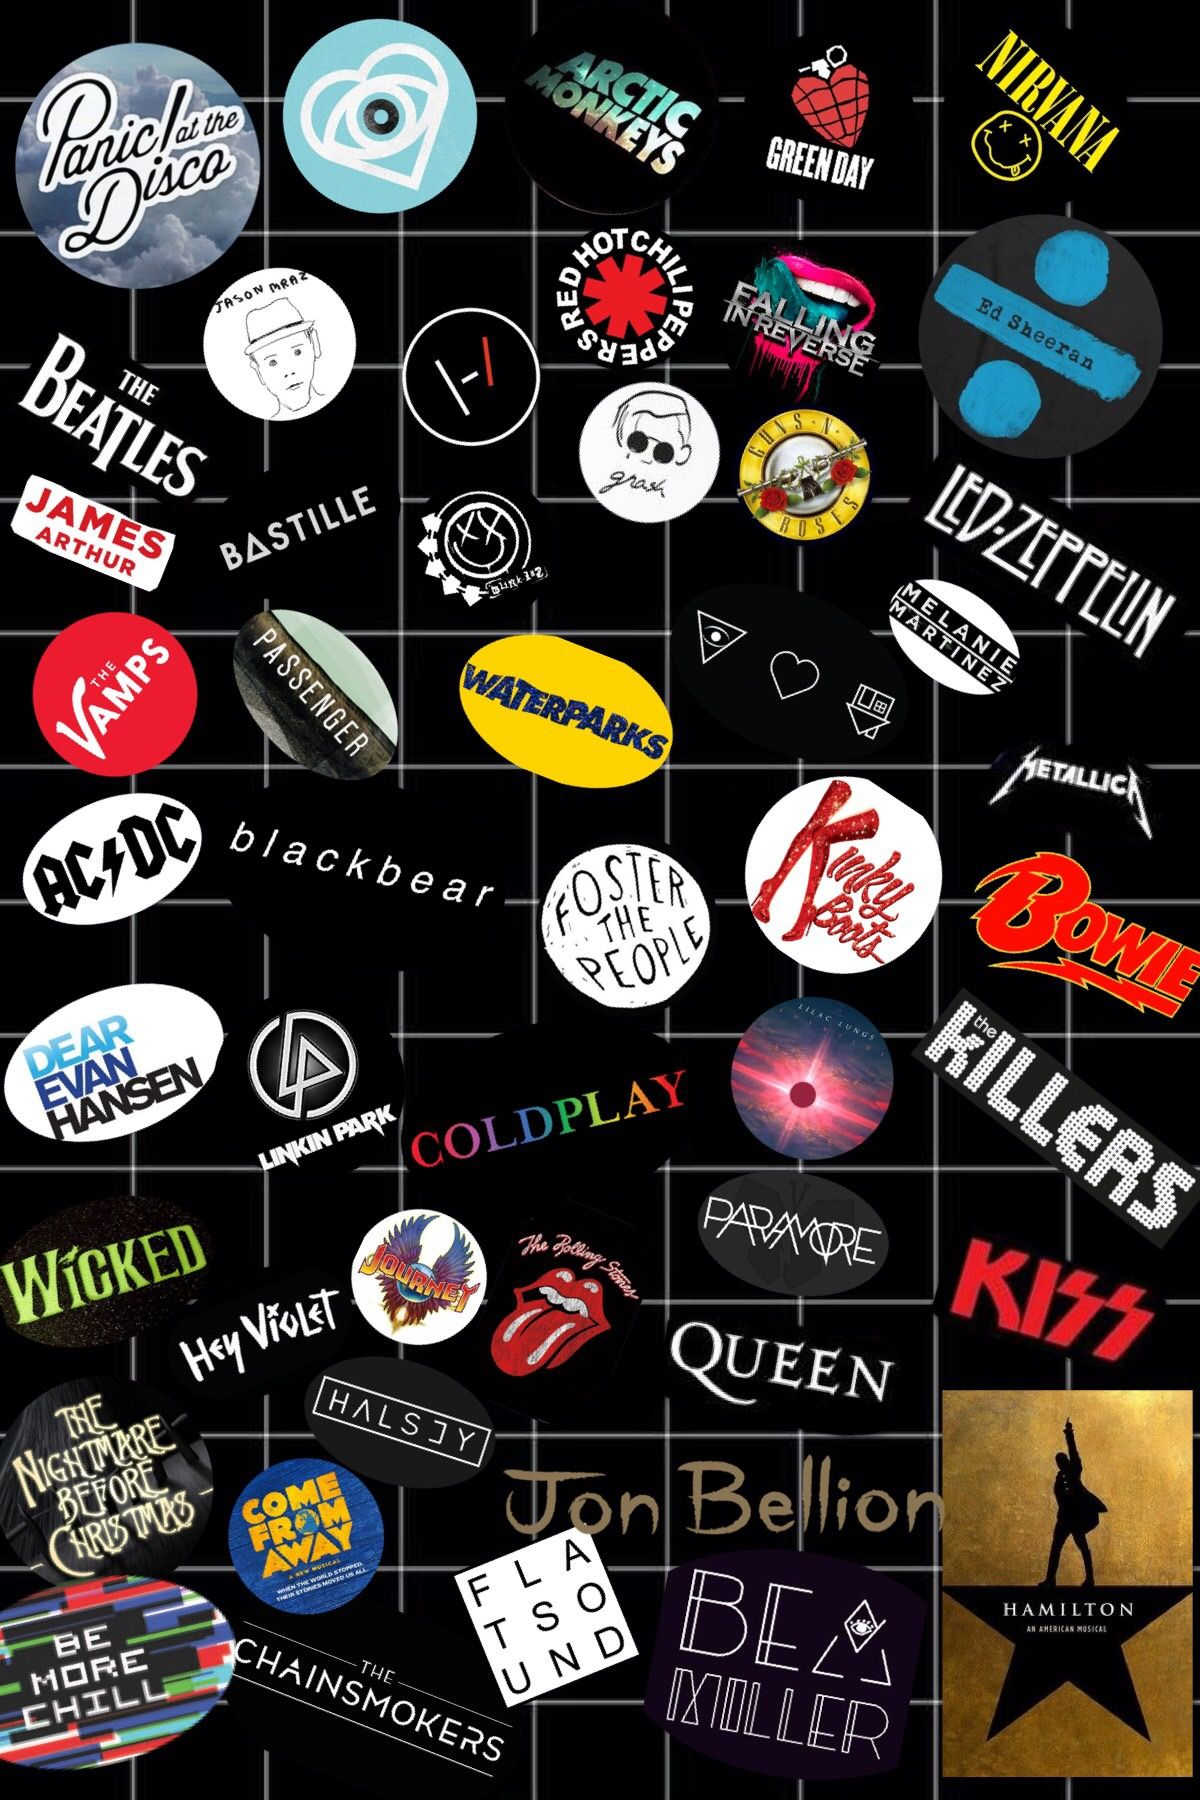 Pin by oscar-kloip on Musicals | Band wallpapers, Rock band posters, Band  posters